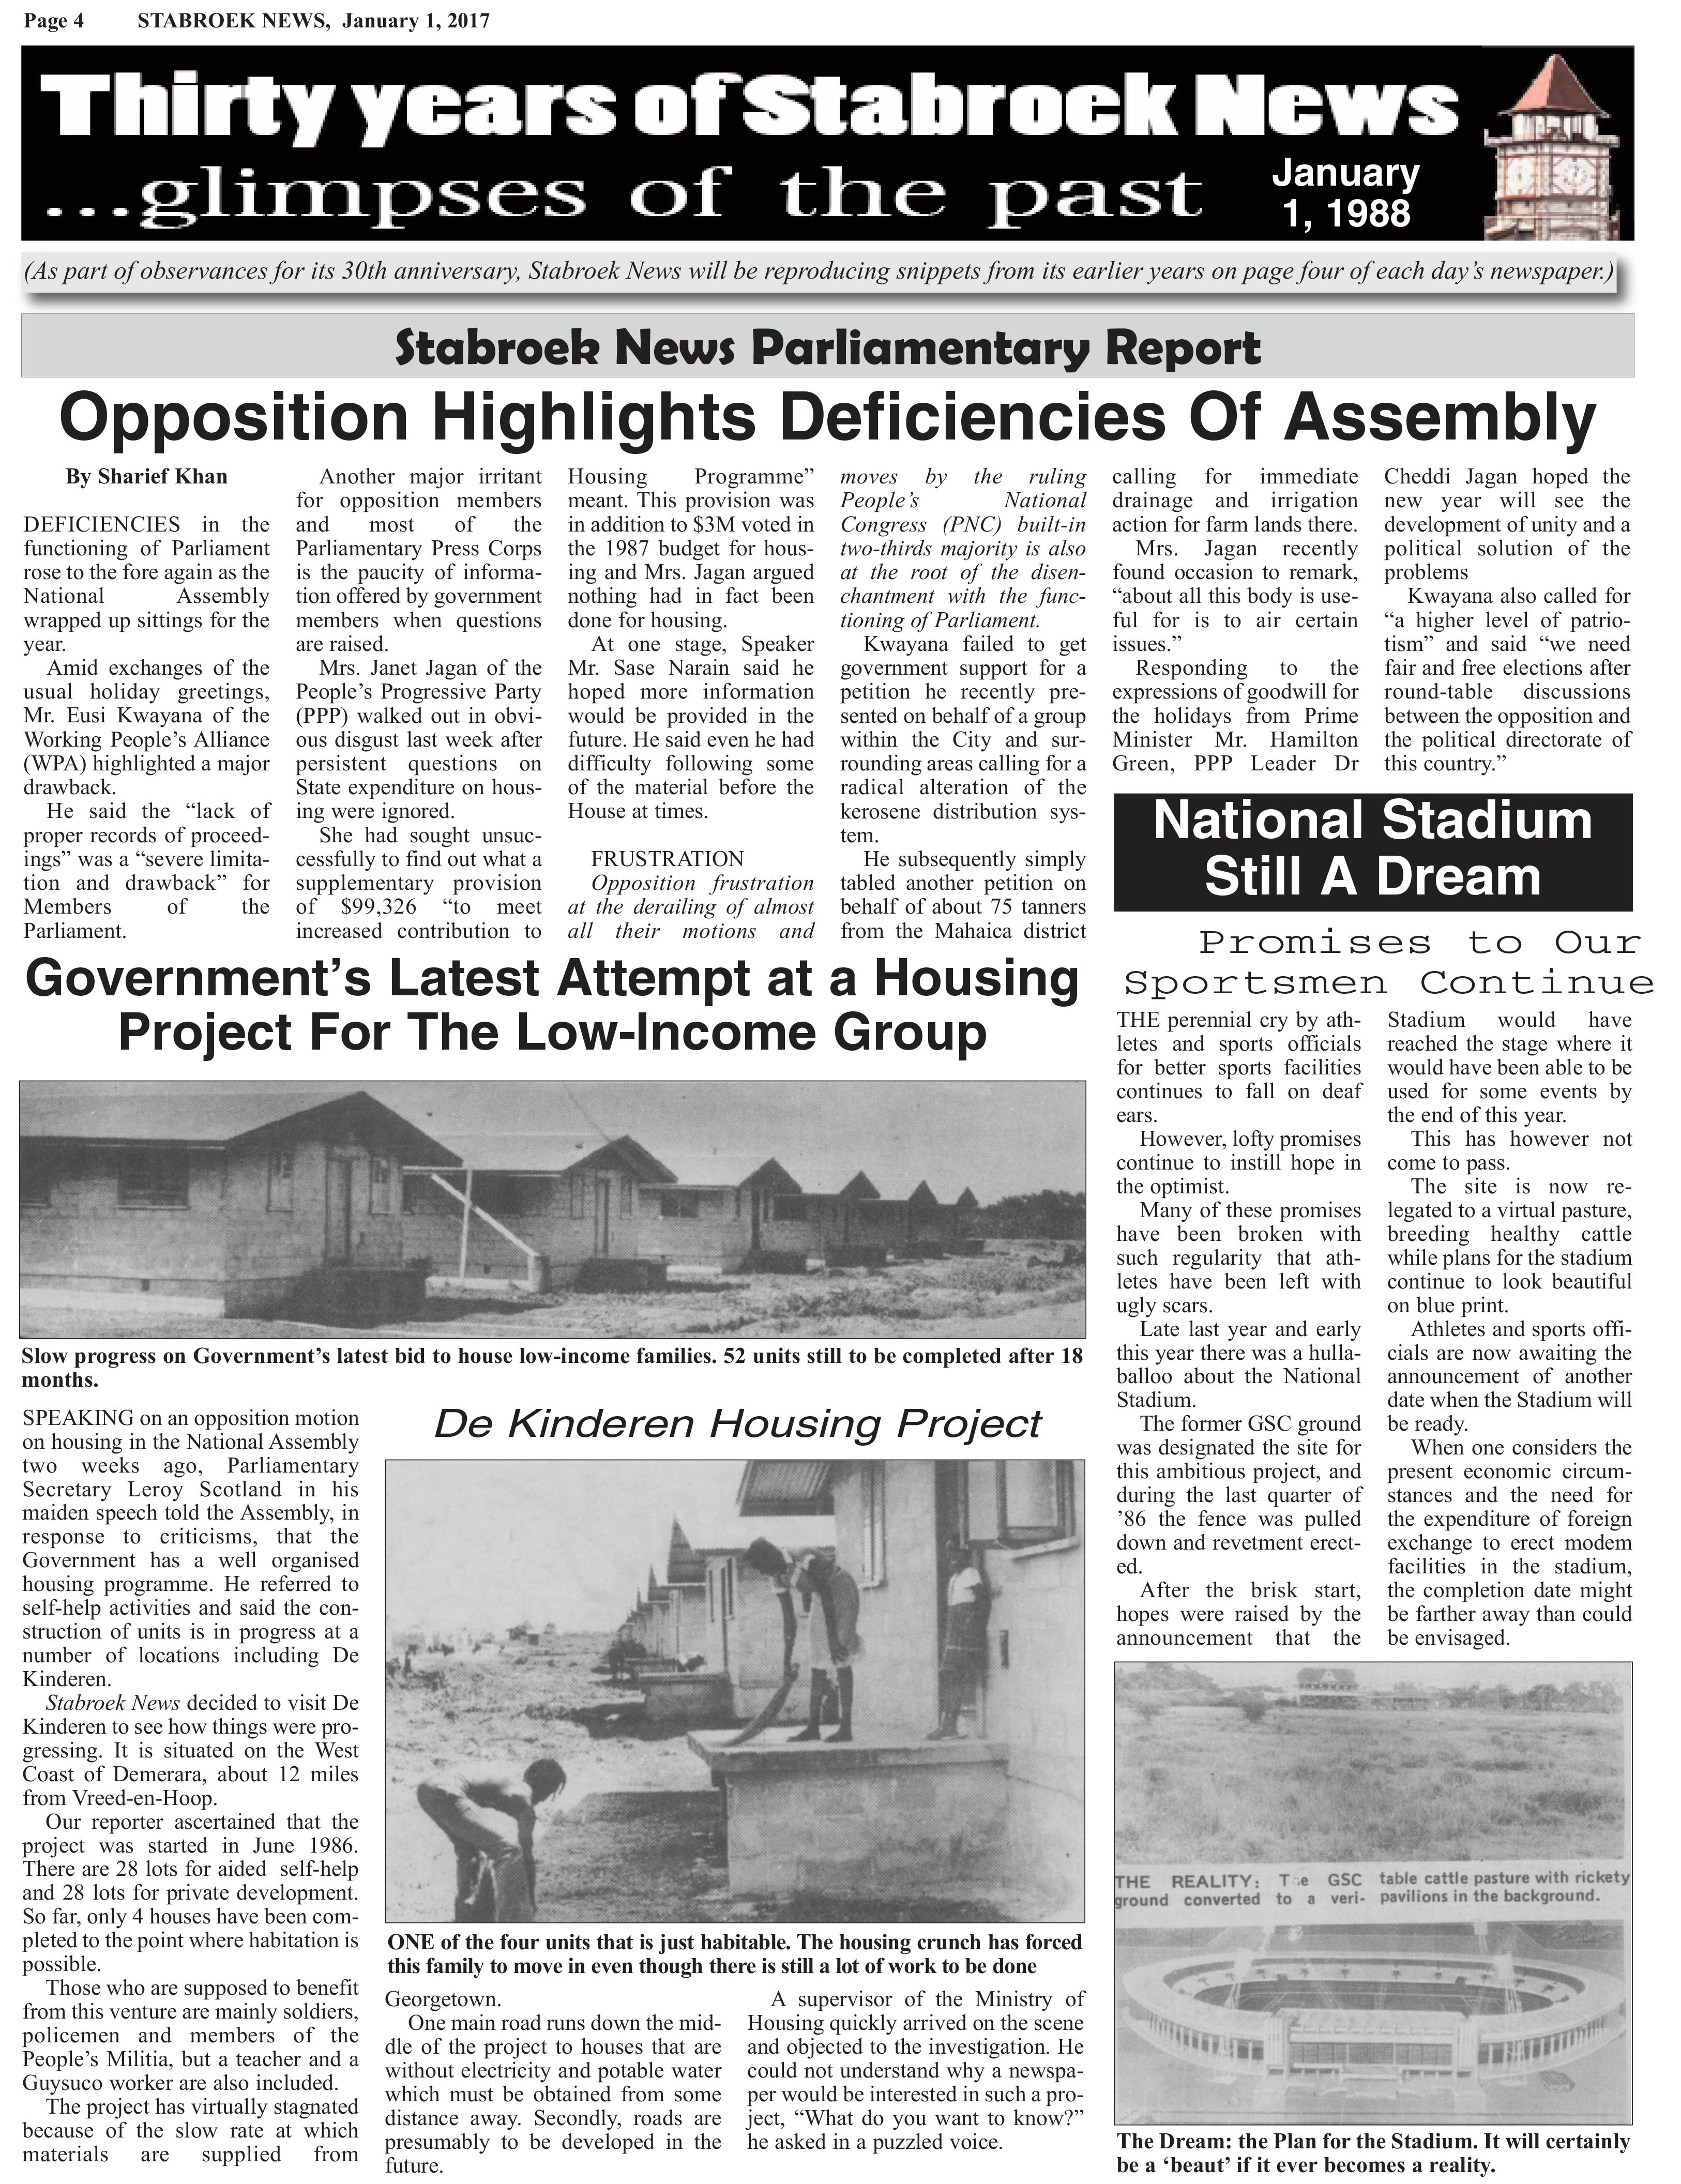 First published January 1, 1988 - Stabroek News